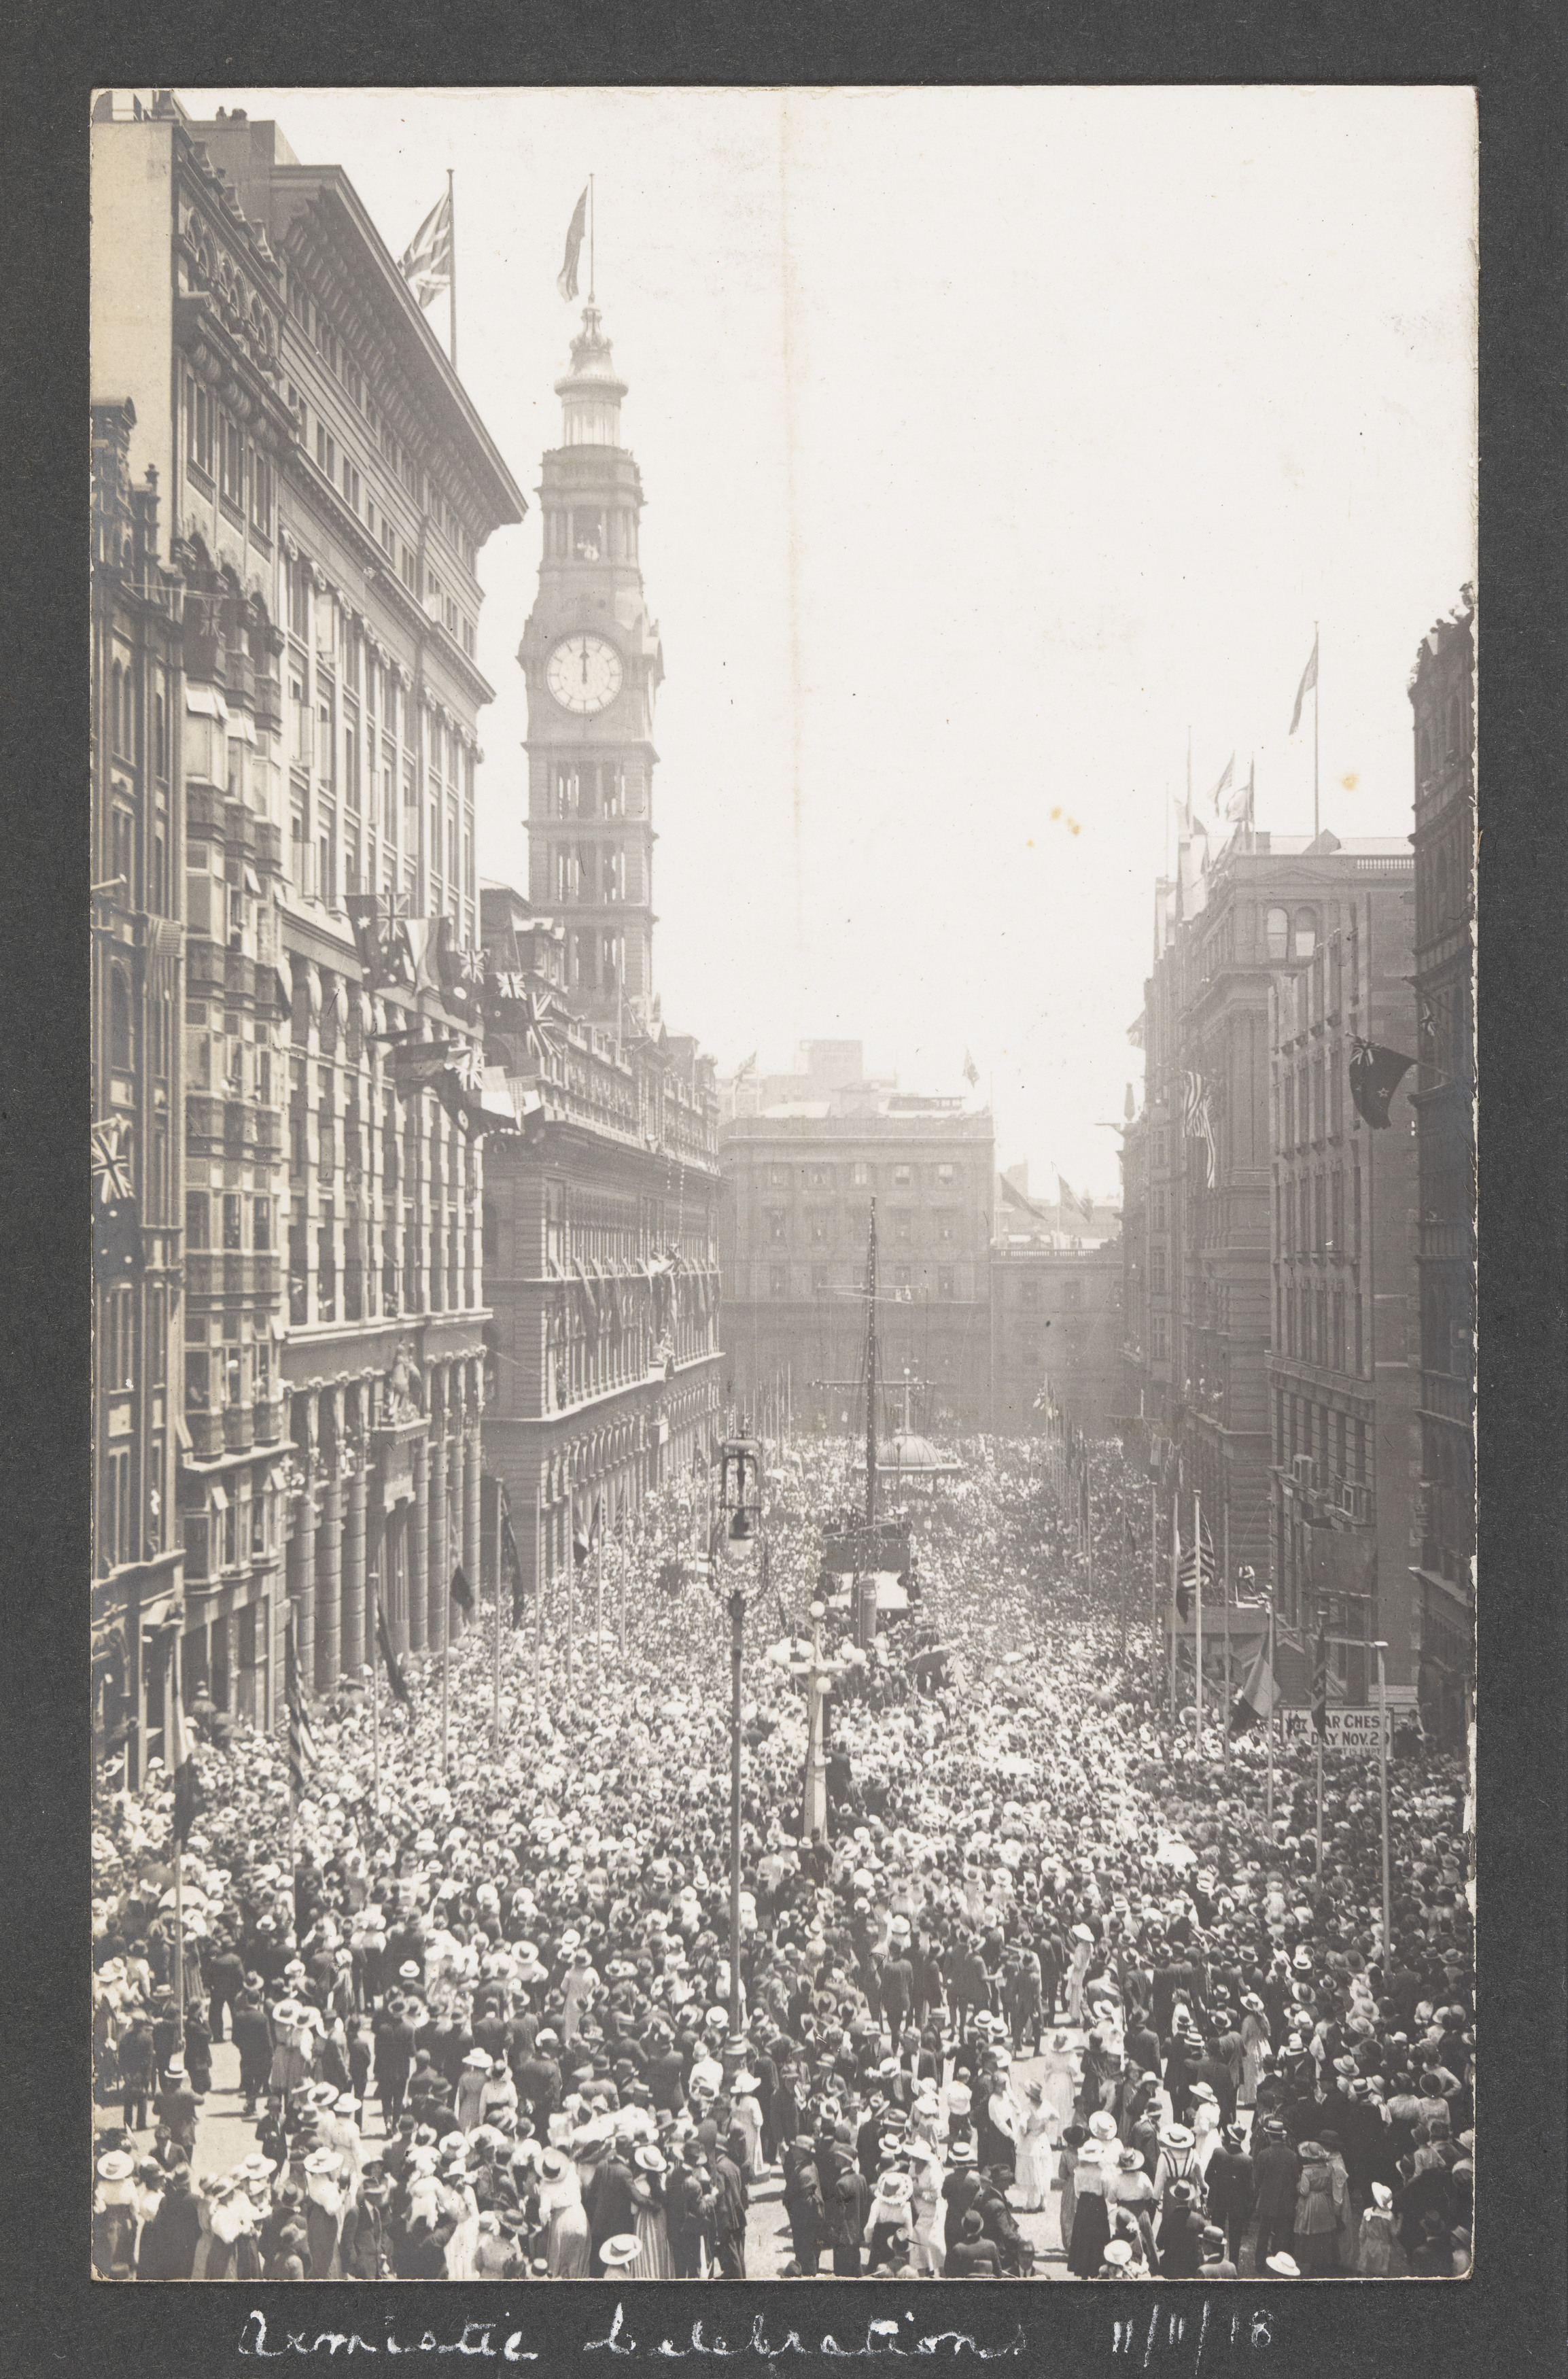 World War I peace celebrations, Sydney, October 1918-1919 / photographer unknown